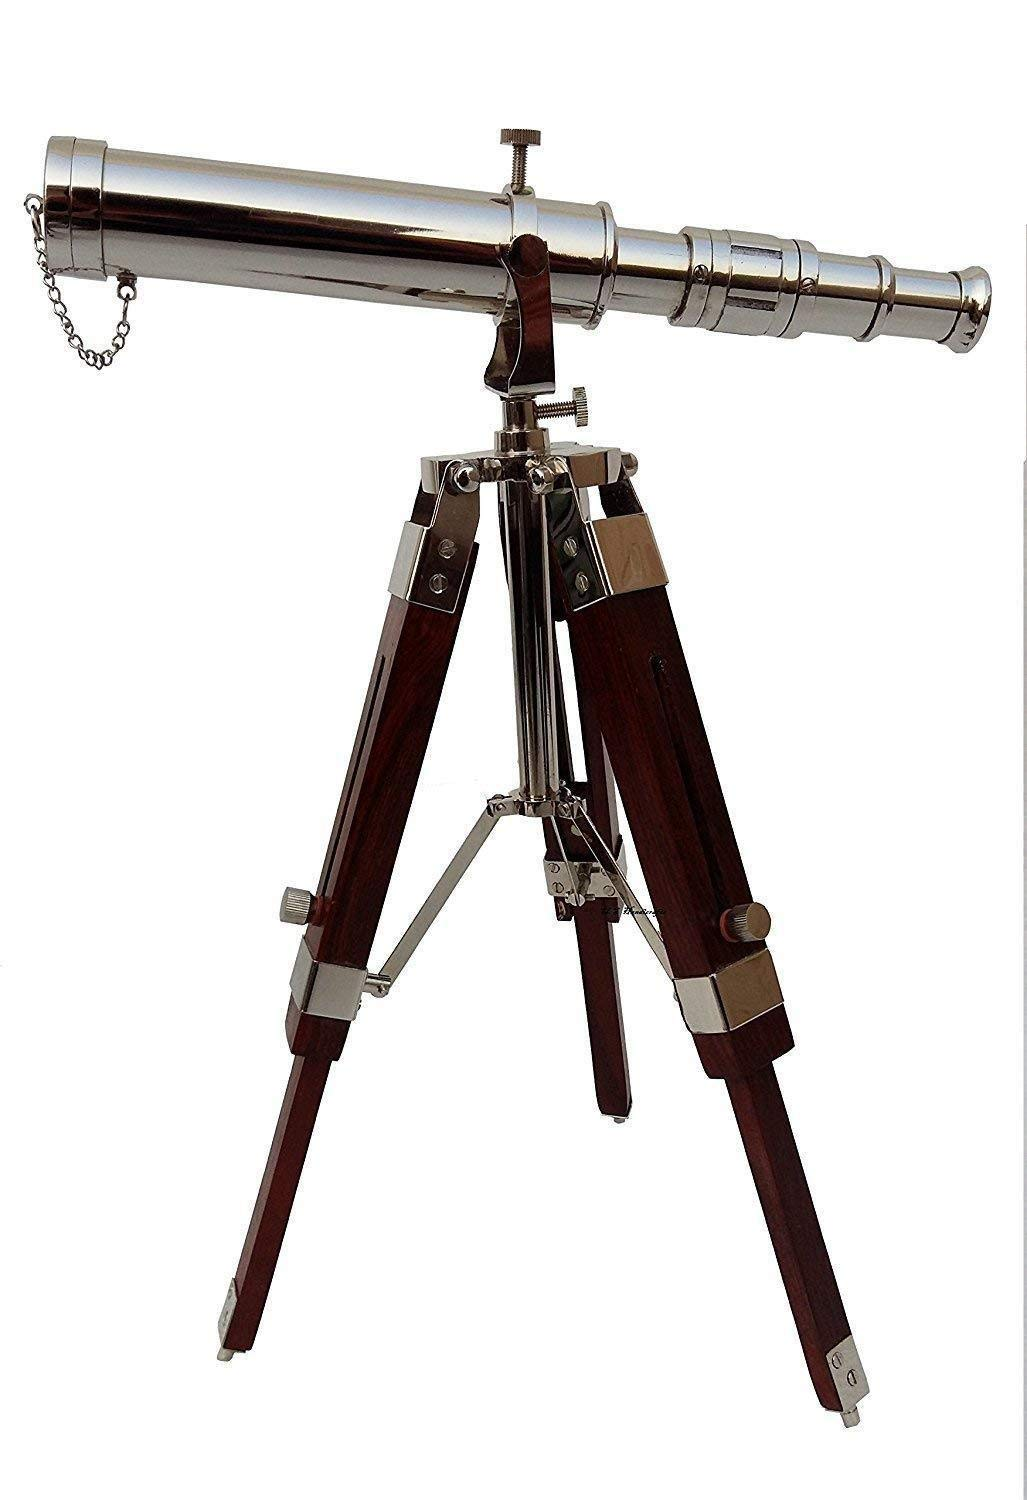 Arsh Nautical Collectible Handmade Brass Marine Telescope with Wooden Tripod Stand